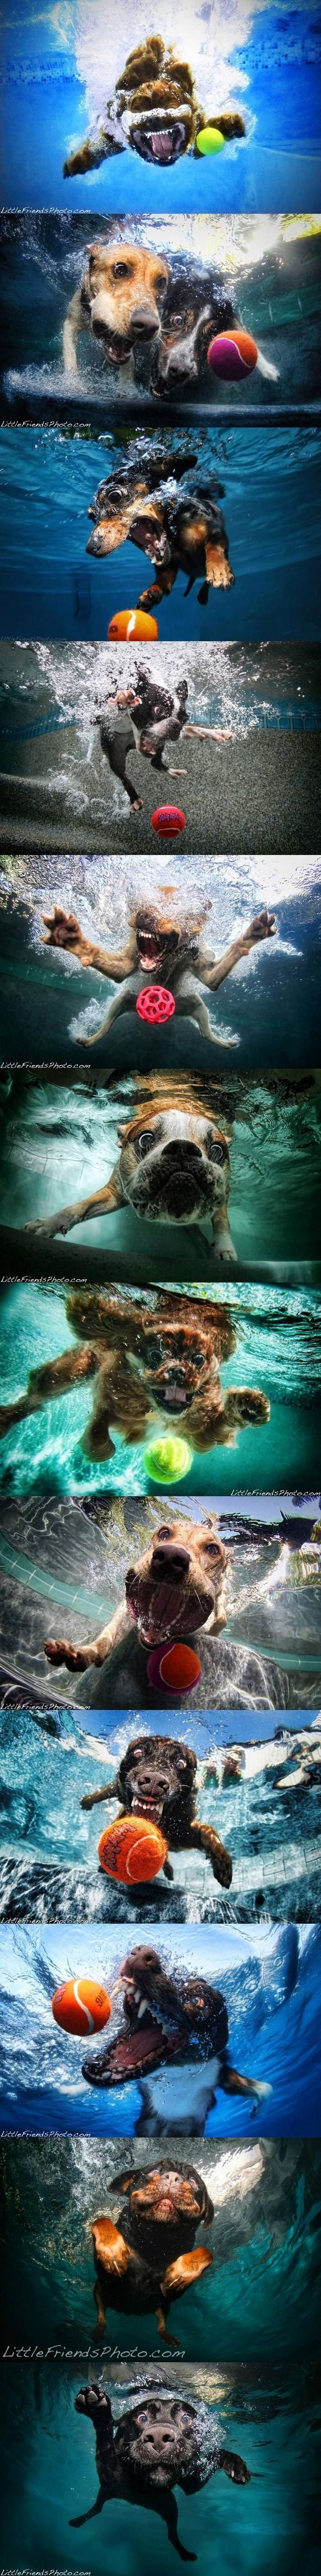 Dogs under water.Ball… ball… ball!!! The amazing underwater photography of Seth Castell       @KasiDee Cox it's Pete! Hahahah